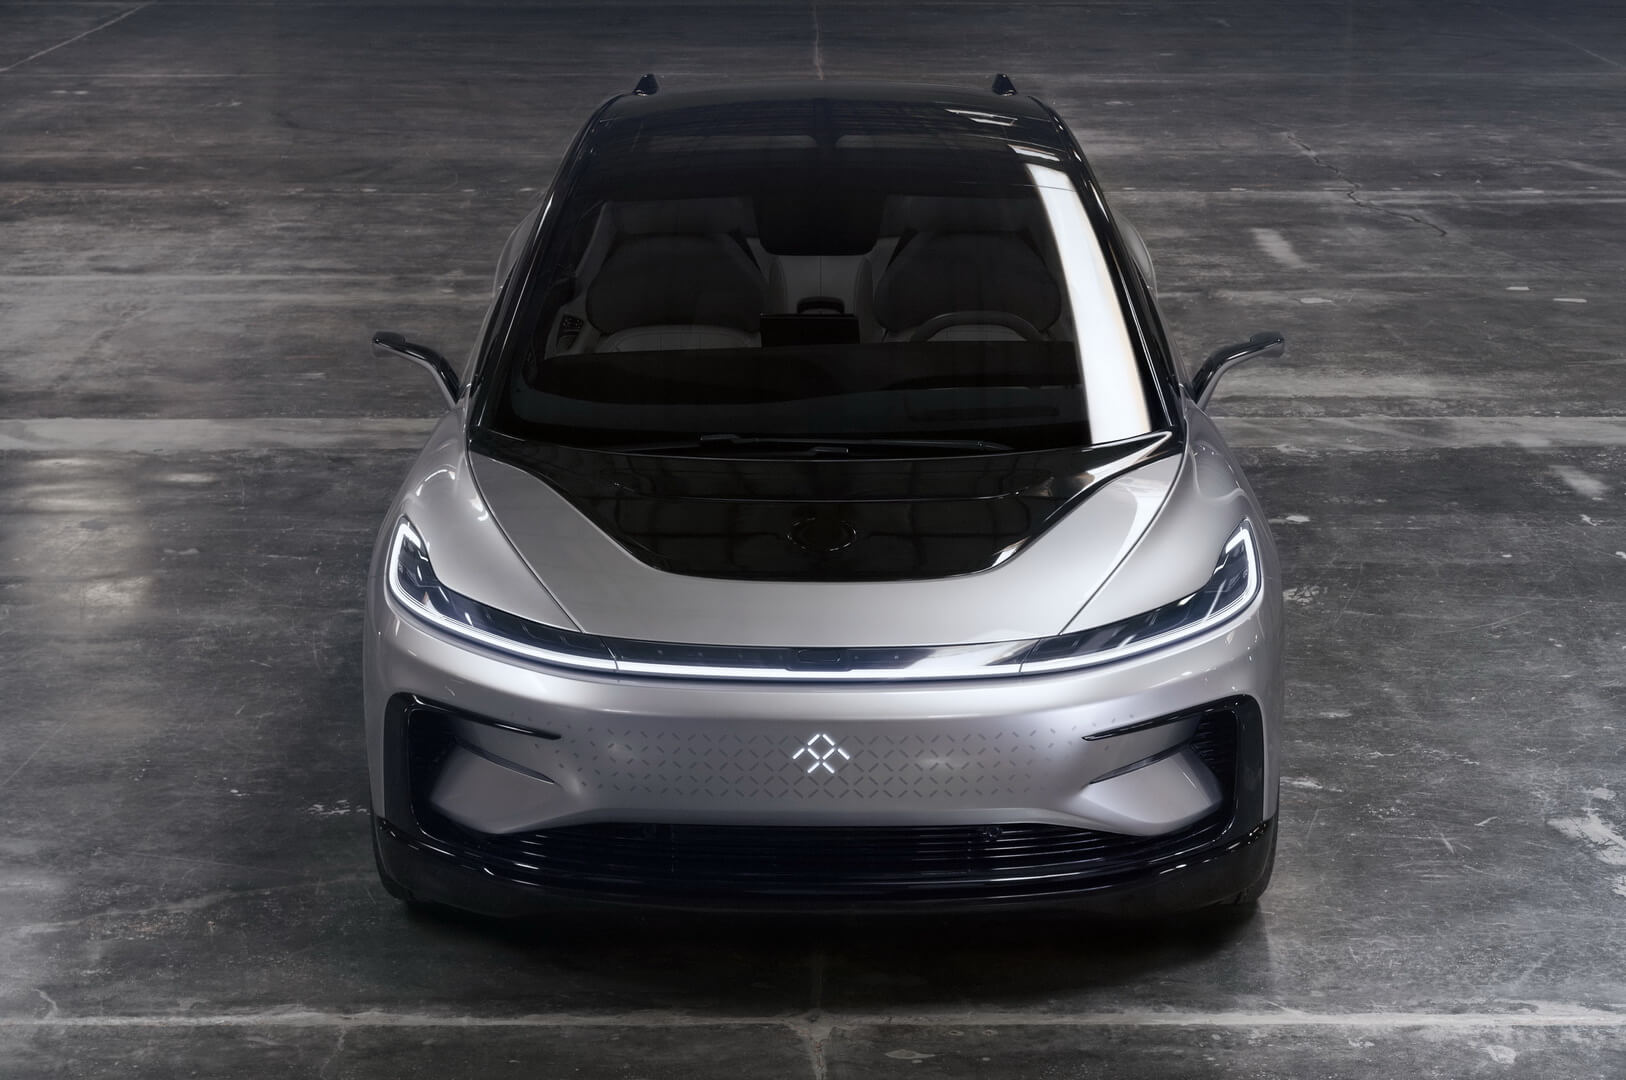 Faraday Future FF 91-exterior-5